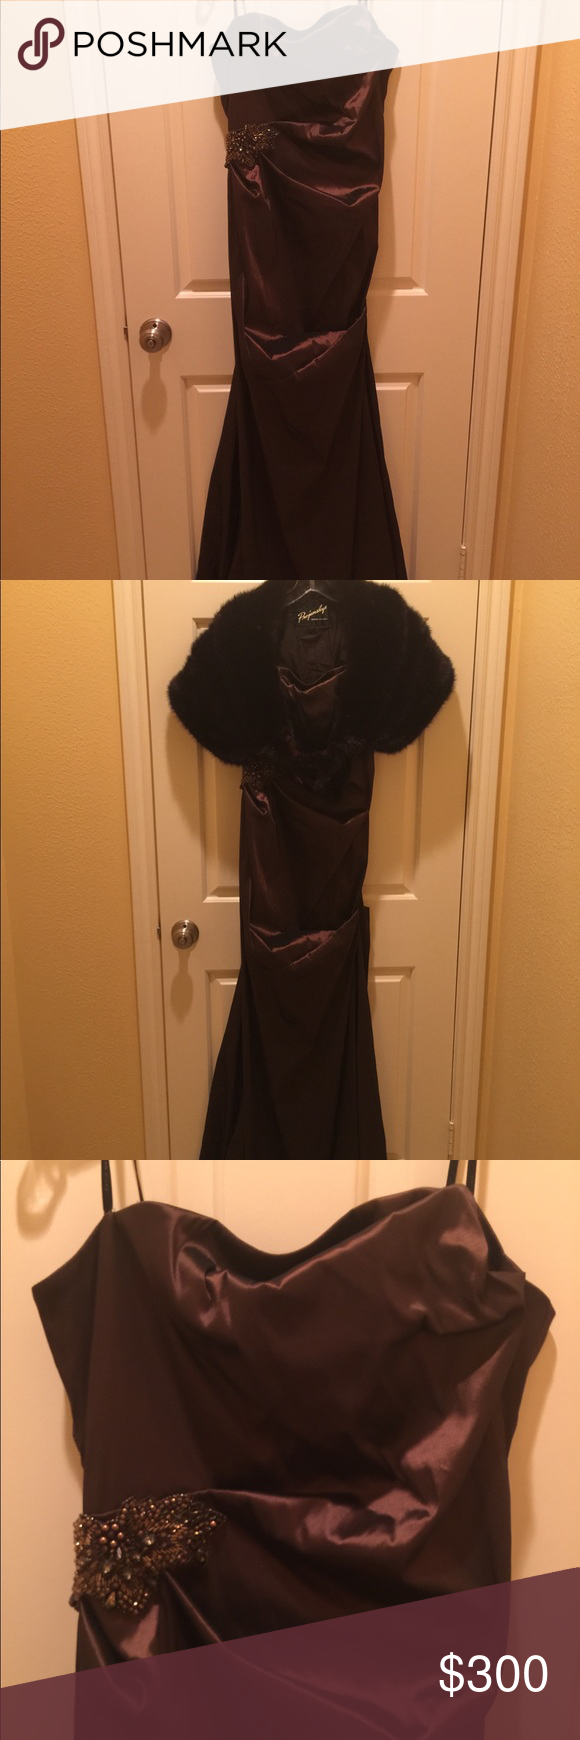 NWT David Meister strapless evening gown Glamorous strapless evening gown Dark m…